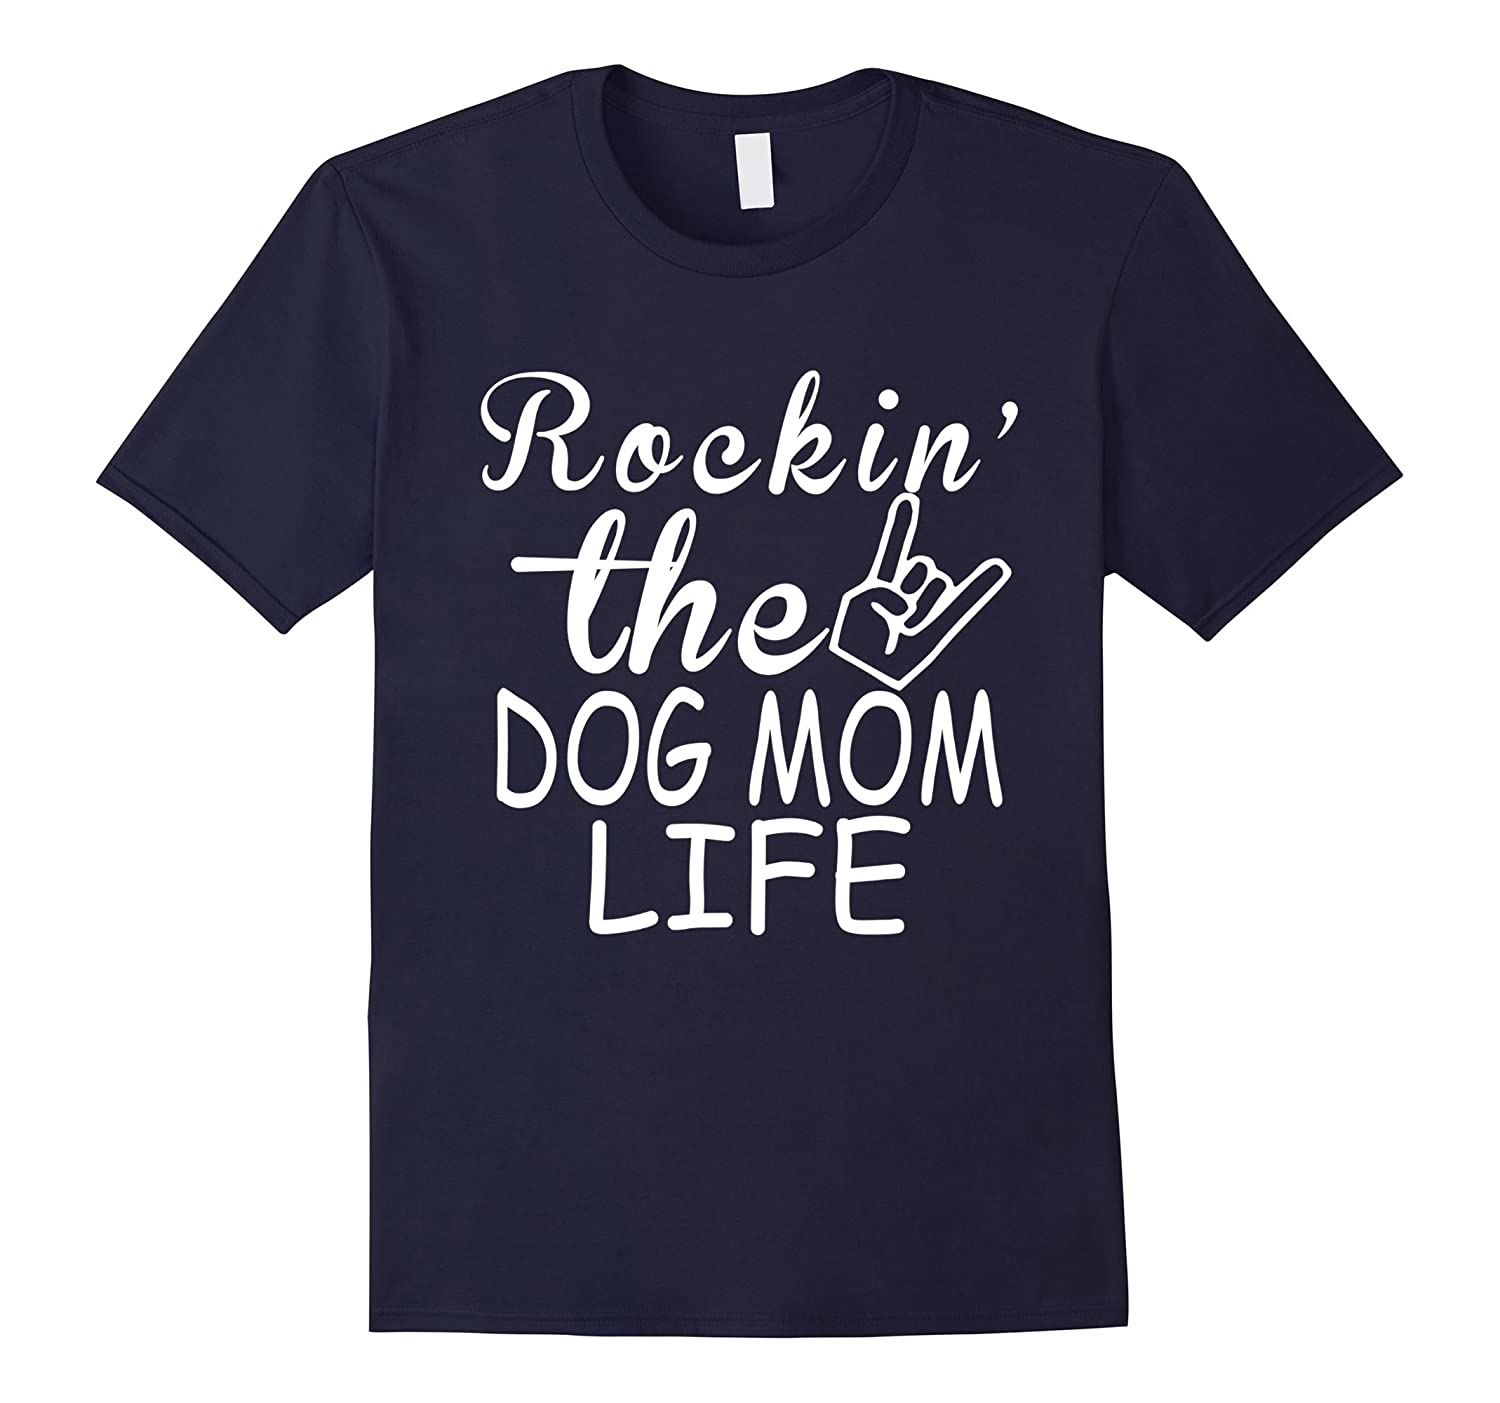 rockin the dog mom life shirt-BN